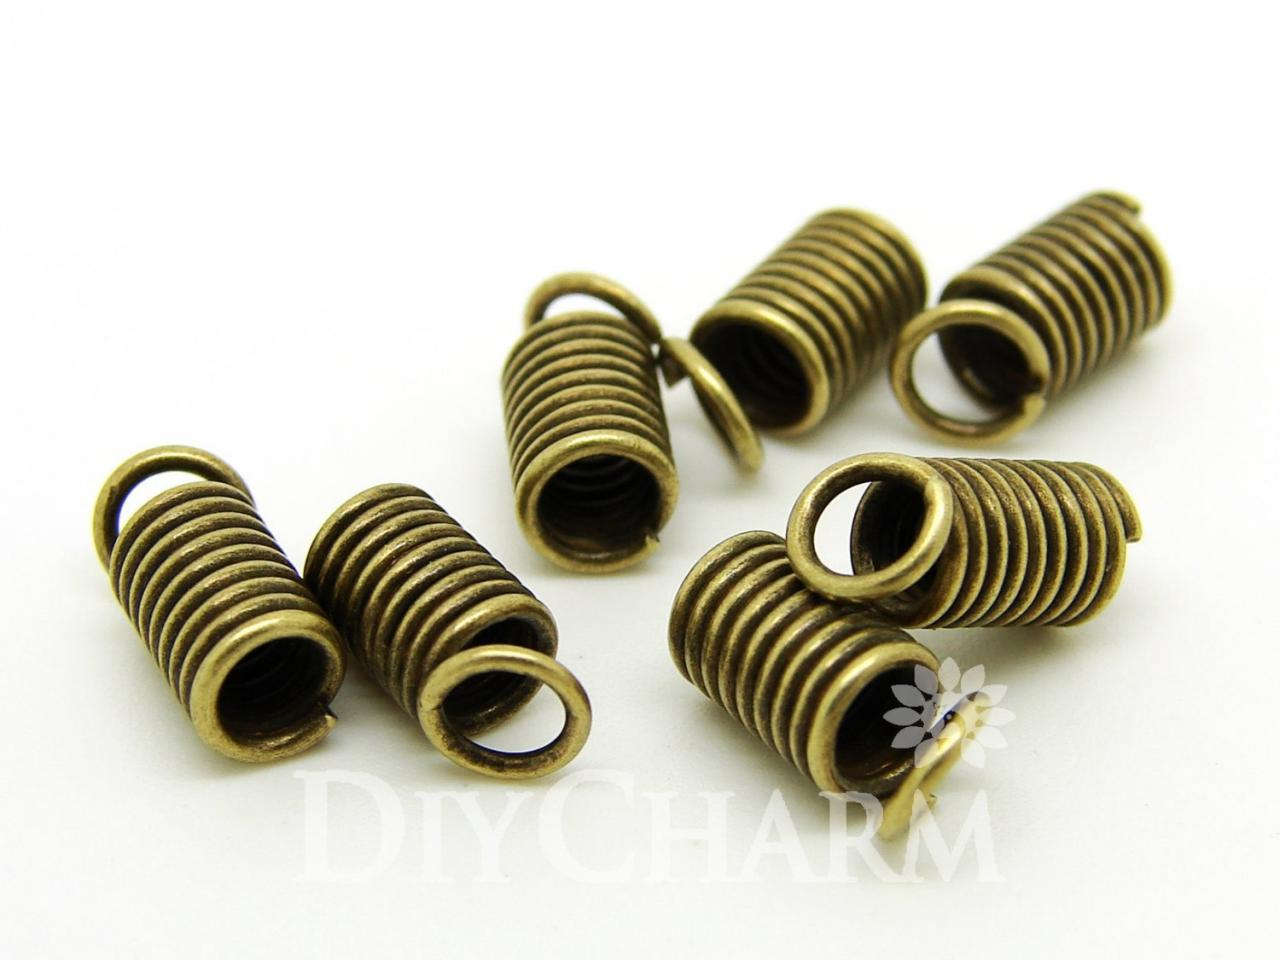 Bronze Tone Spring Coil Cord Ends 8x4.5mm - 100Pcs - FQ23850